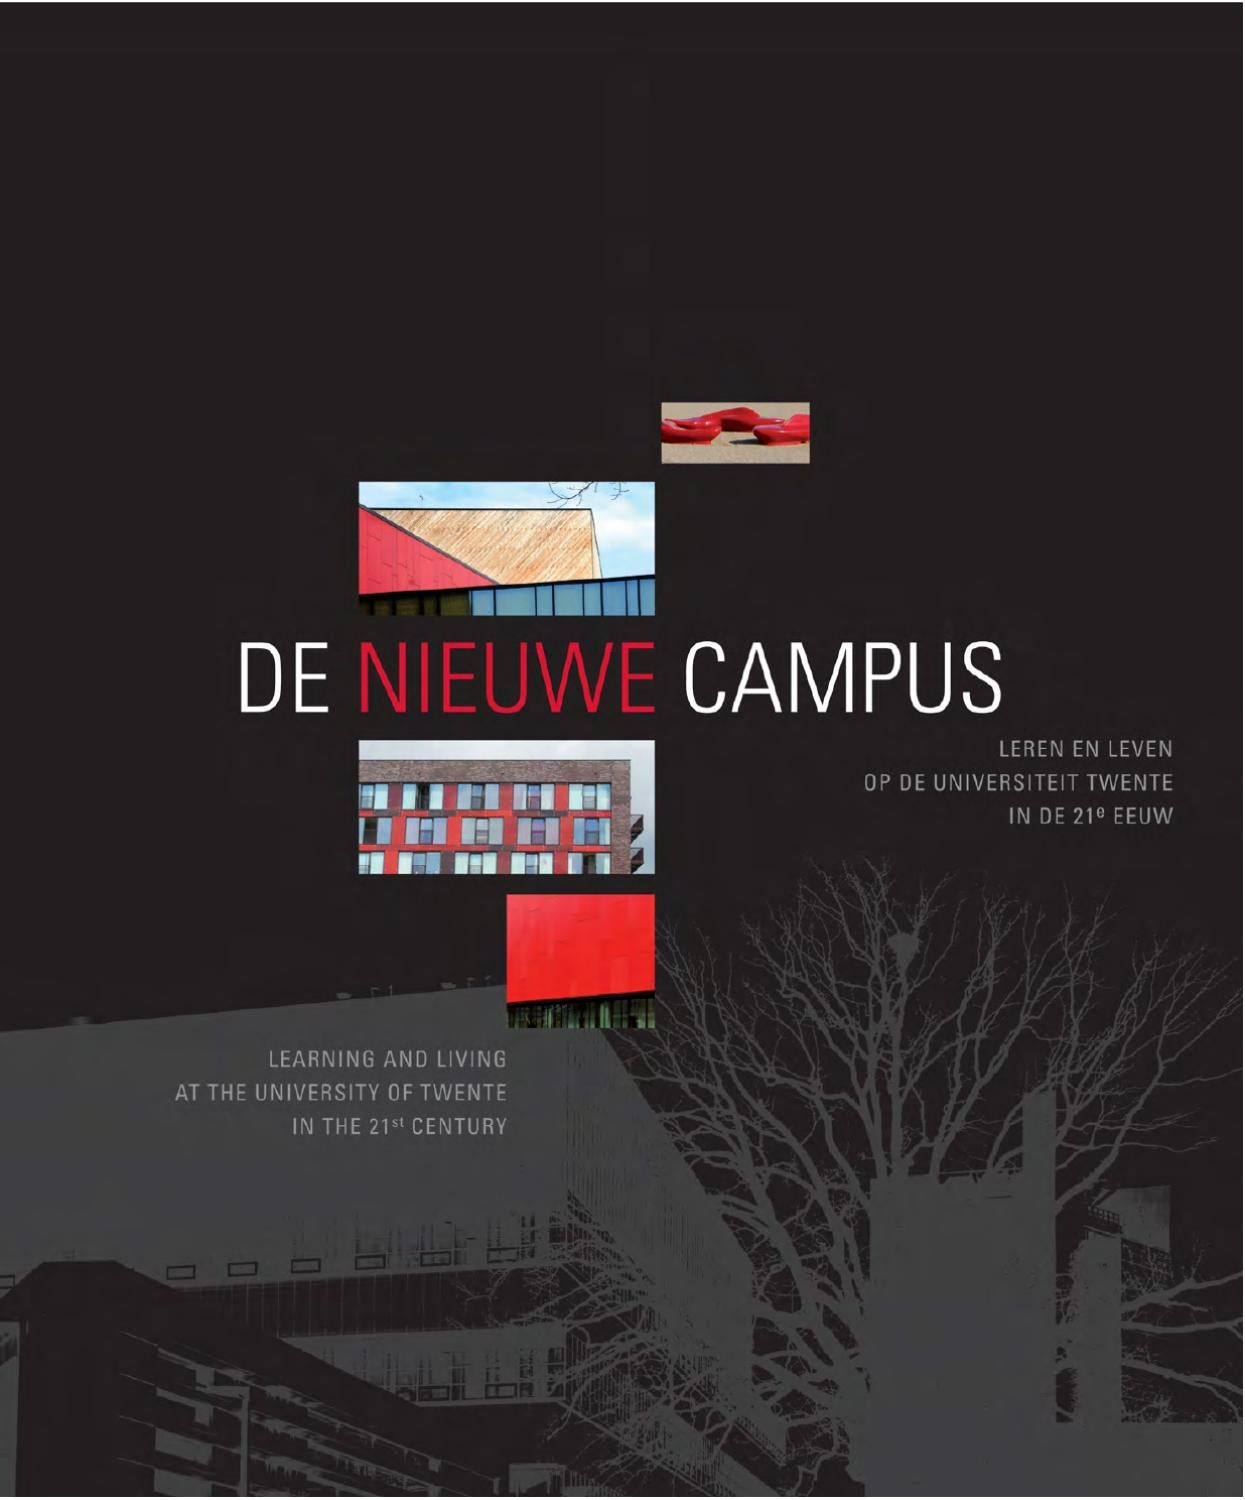 de nieuwe campus the new campus book text by marco krijnsen